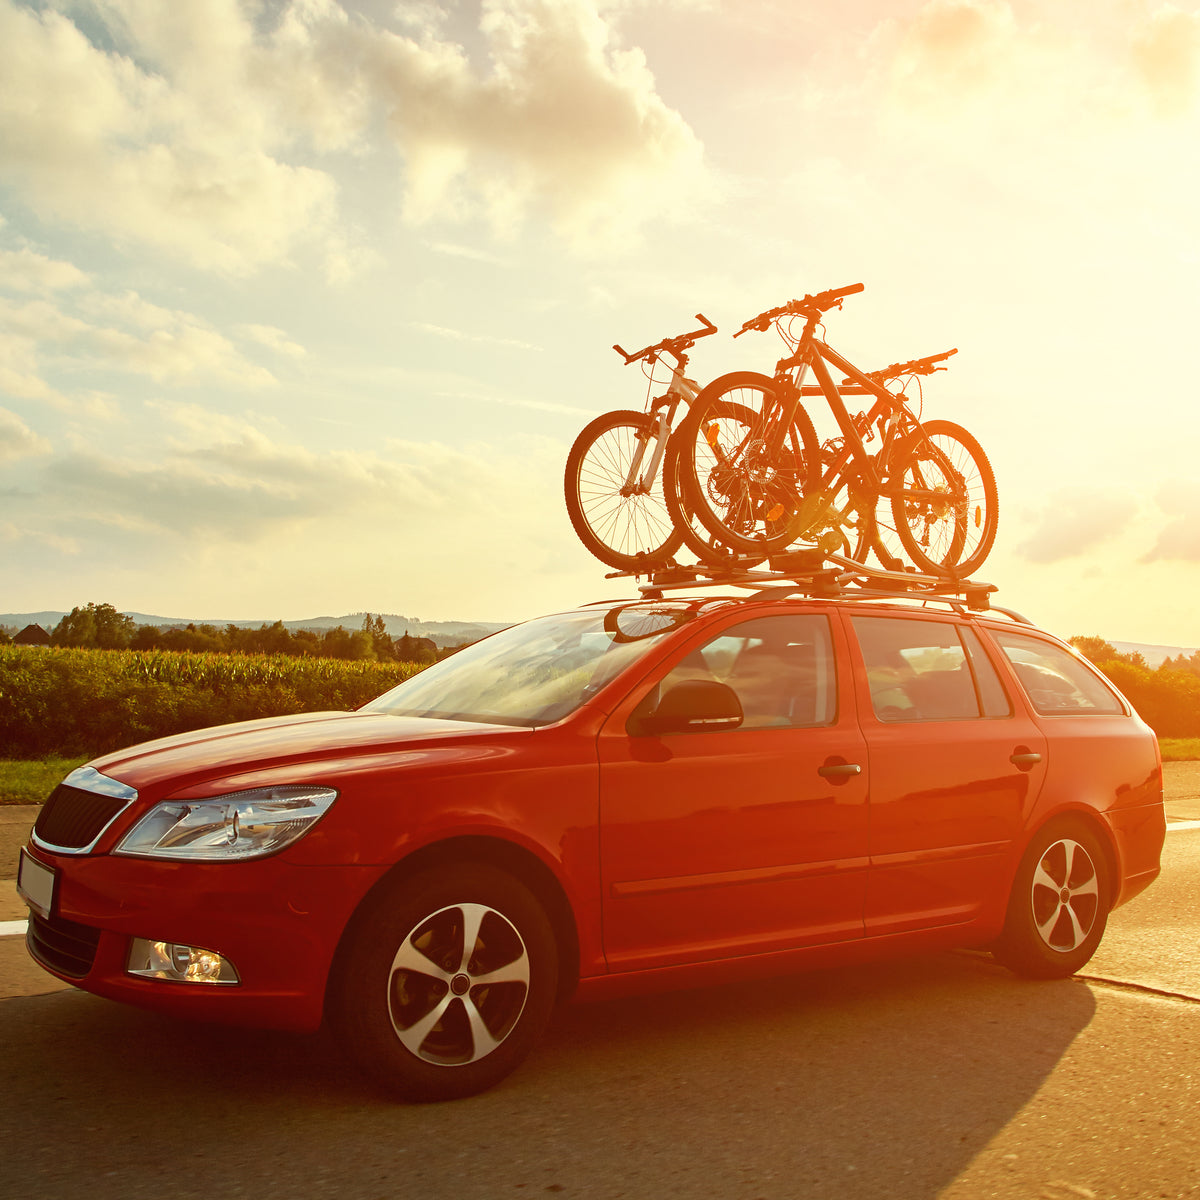 How To Put A Bike Rack On A Car